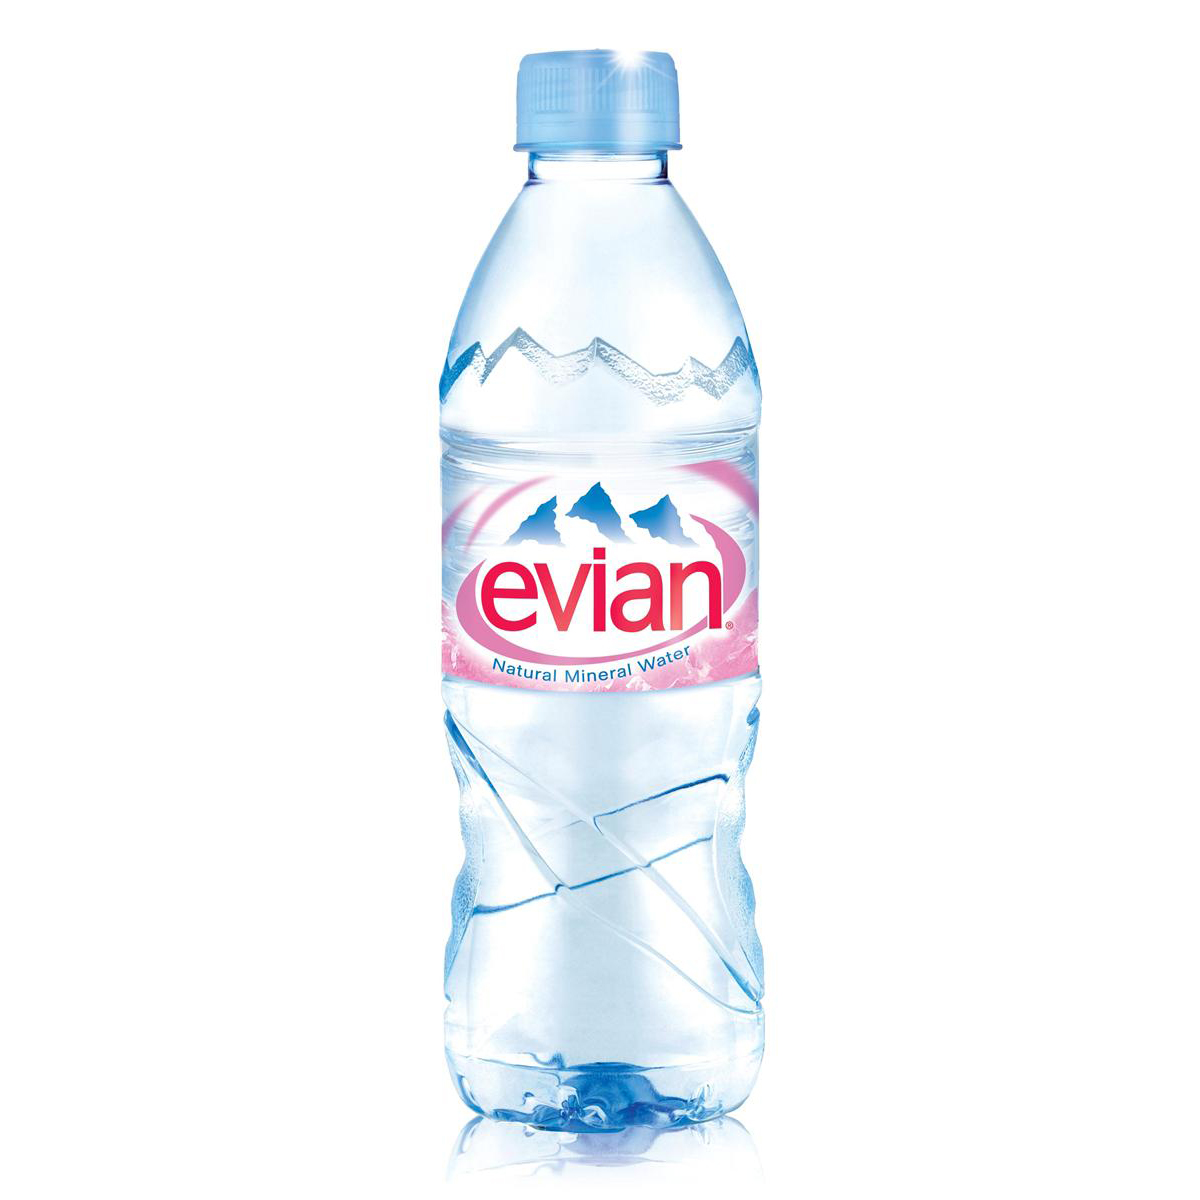 Evian Natural Mineral Water Still Bottle Plastic 500ml Ref 01210 Pack 24